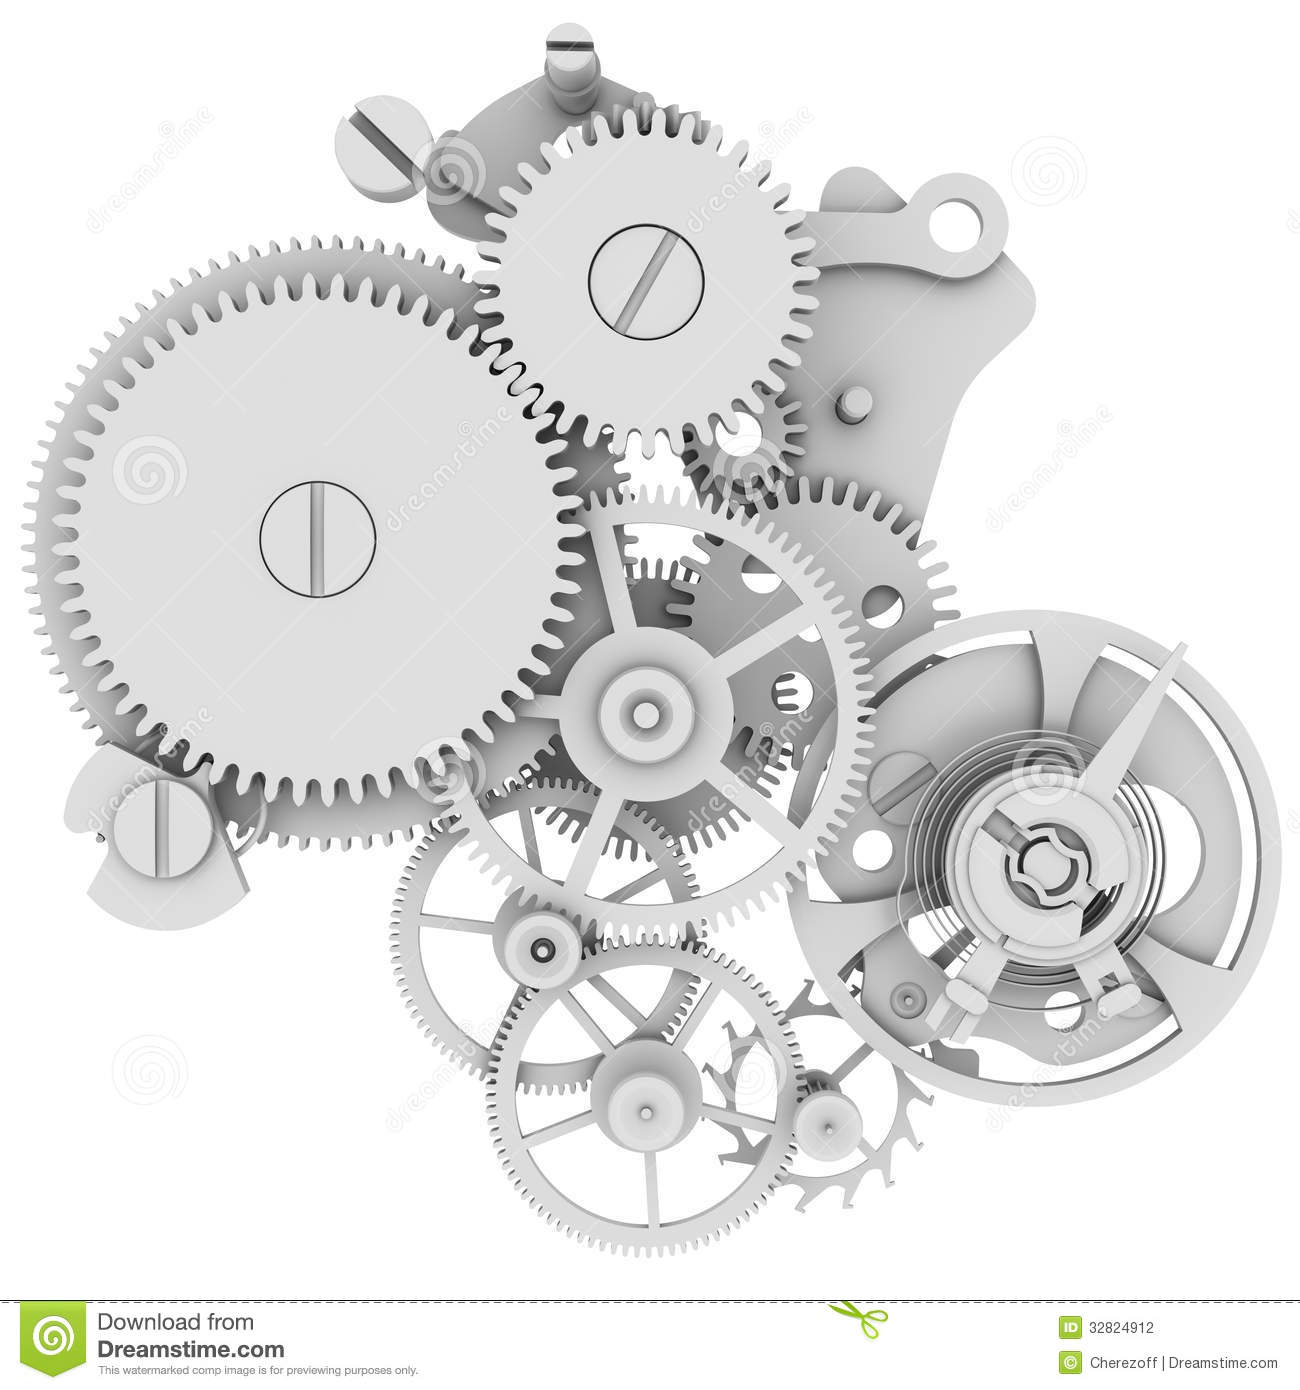 Clock mechanism. Isolated render on a white background.